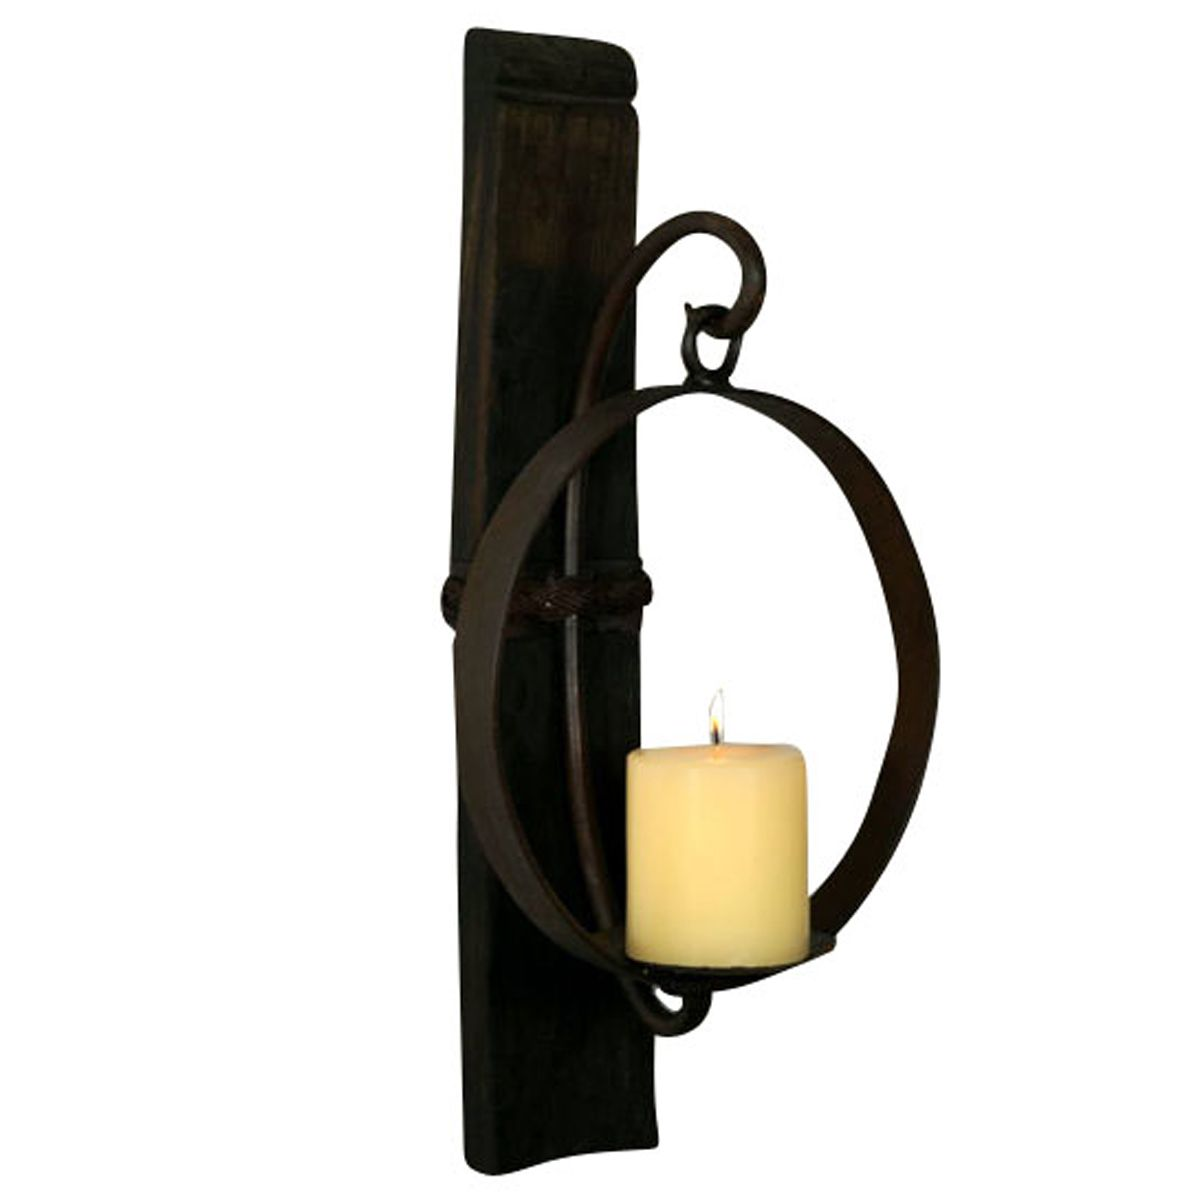 Thea Candle Holder